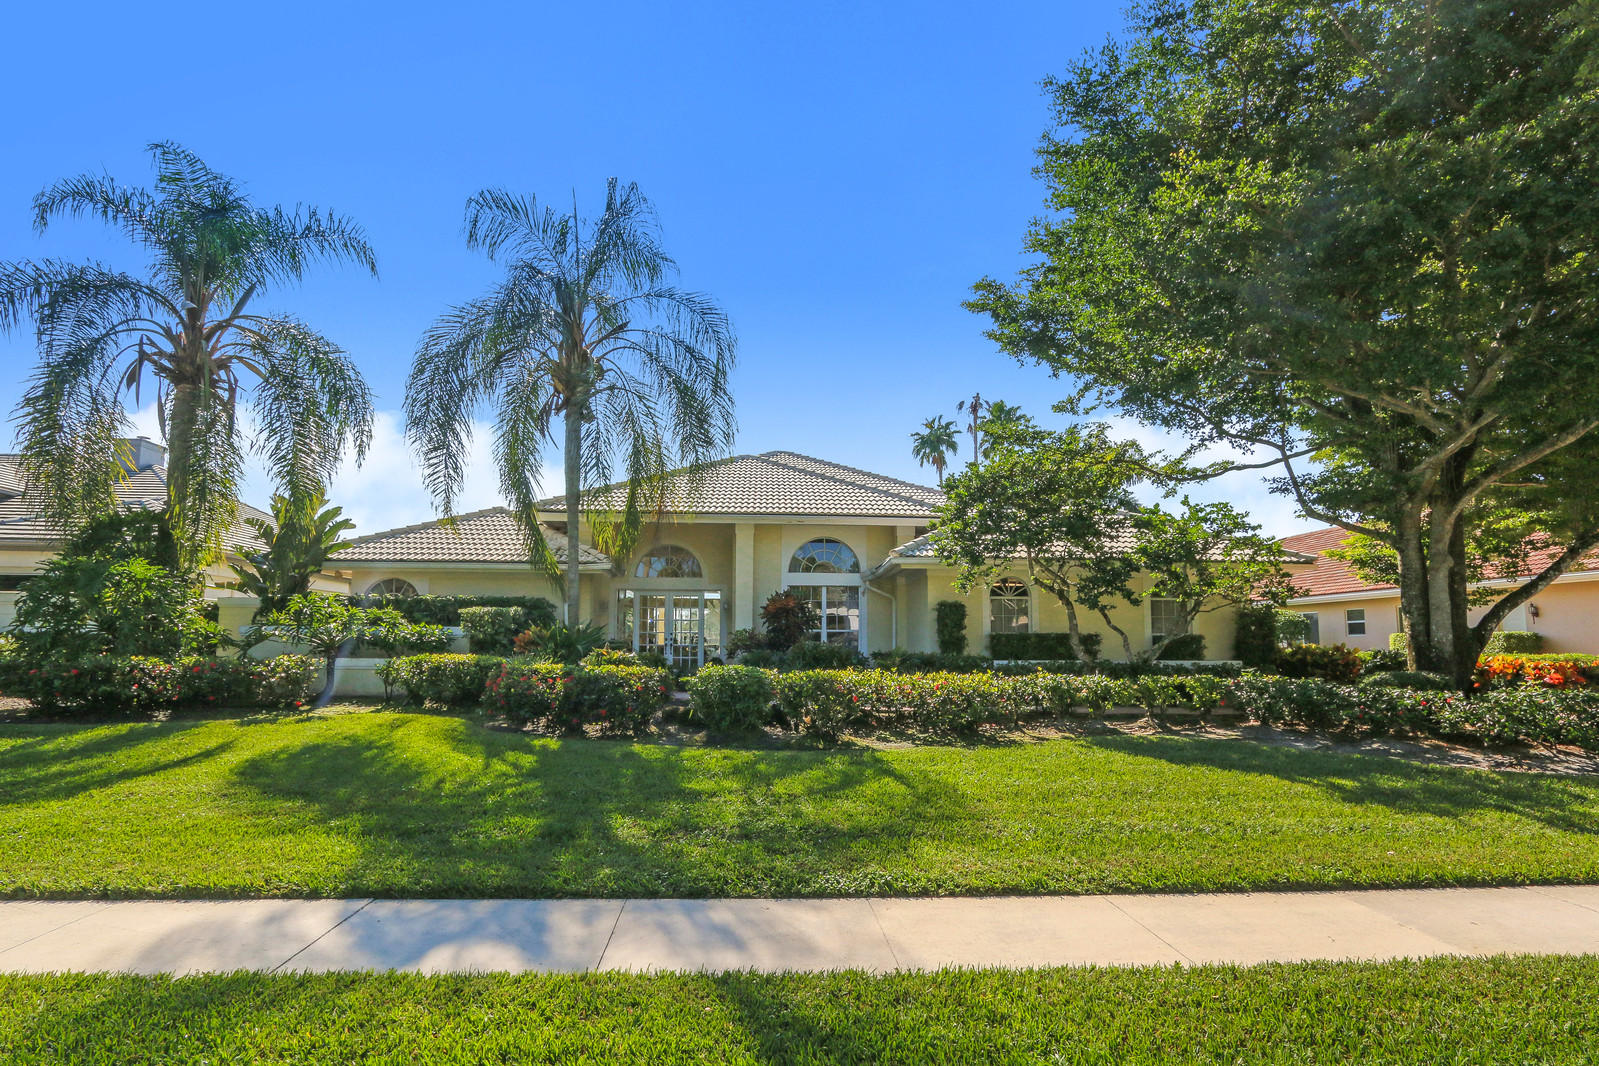 Home for sale in Ibis Golf & Country Club - Egret Pointe West Palm Beach Florida